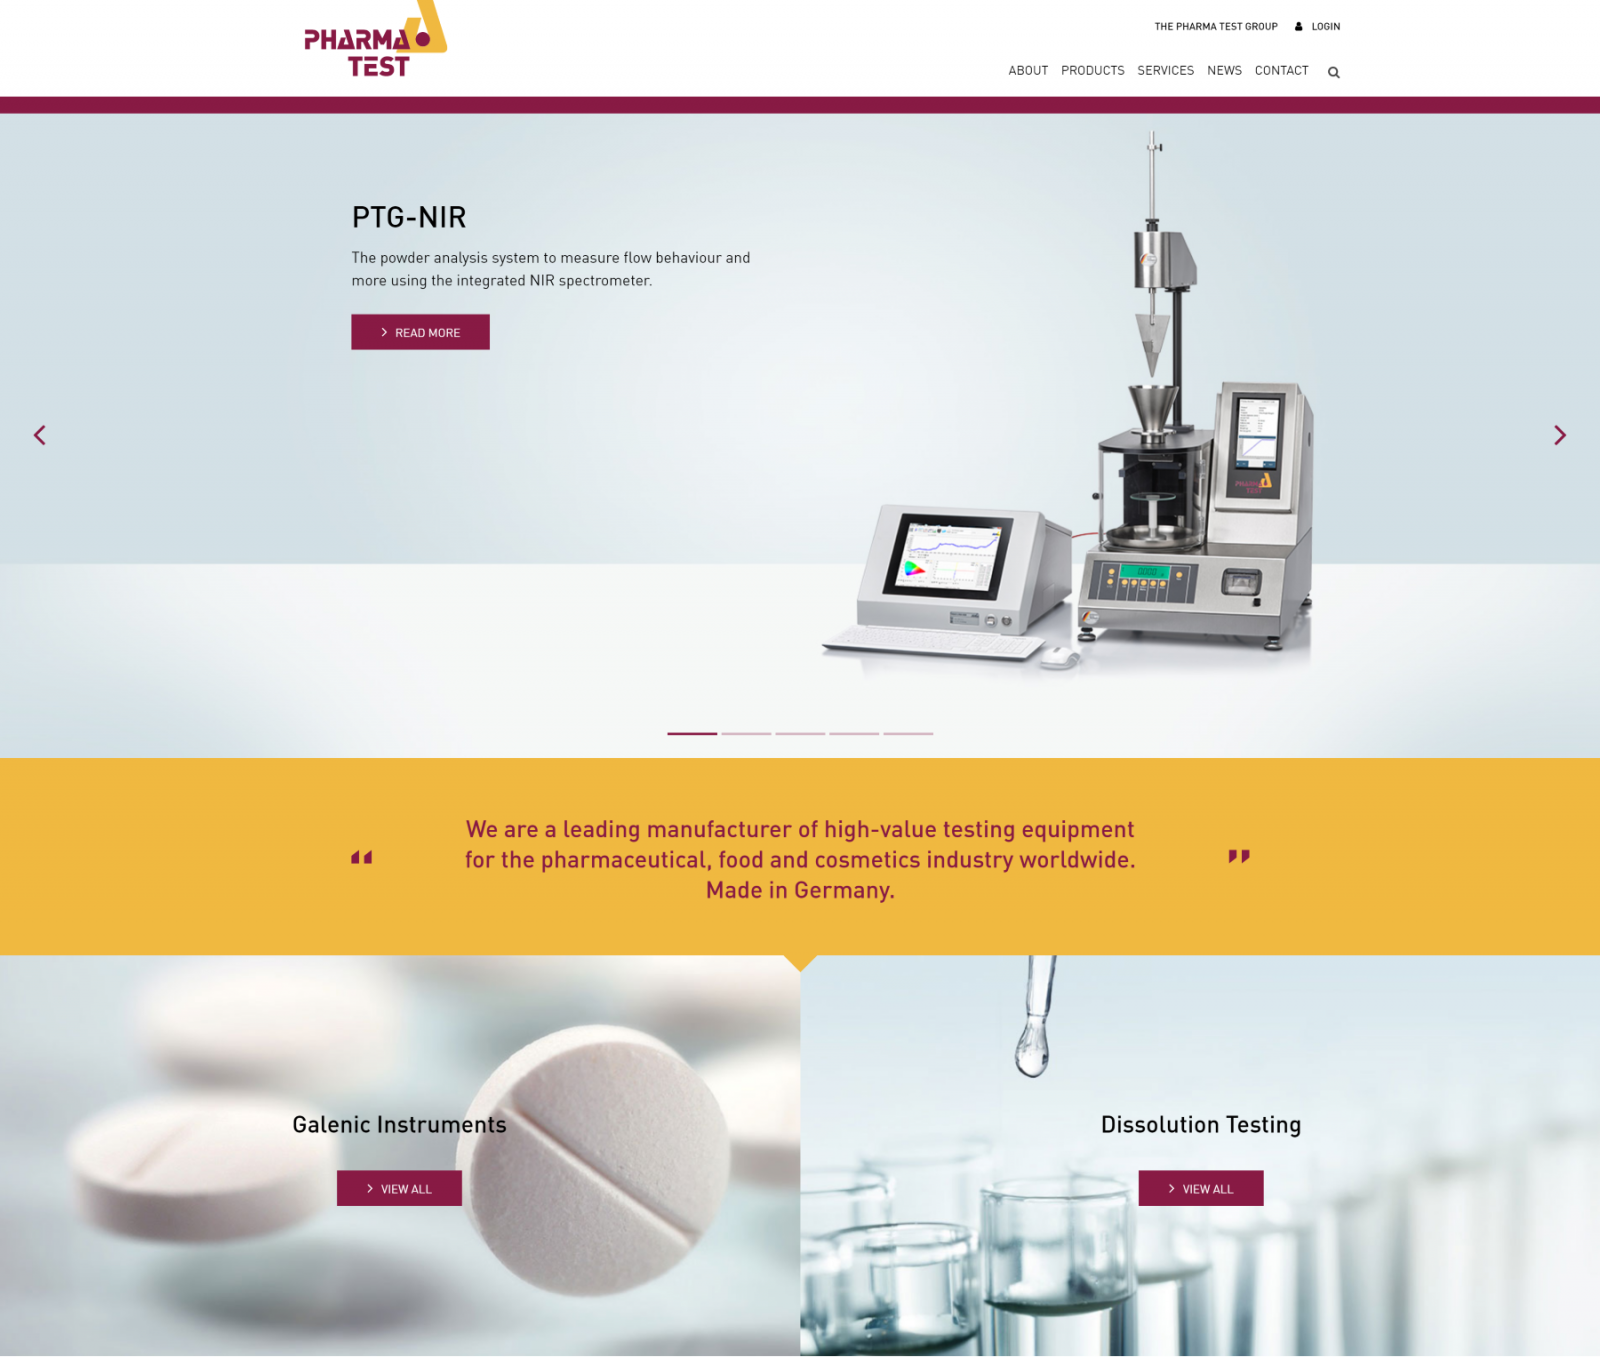 Old vs. new - current homepage of Pharma Test (extract)